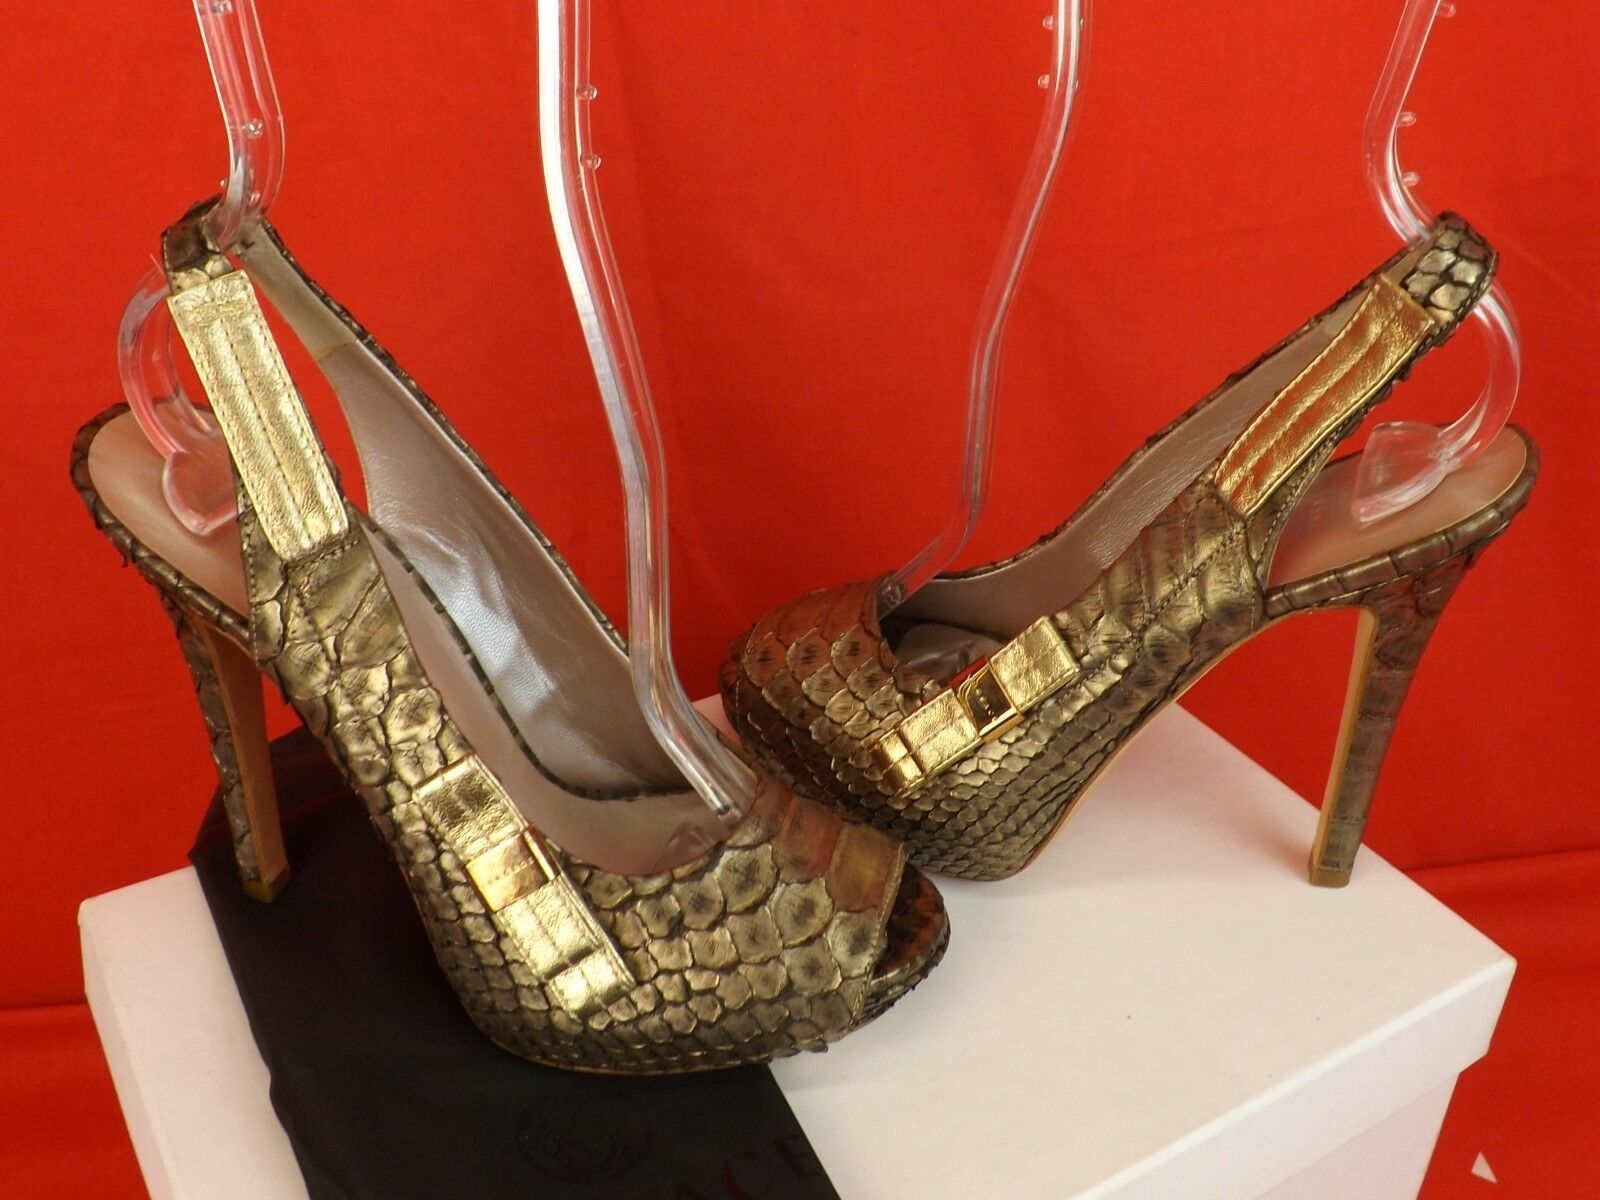 NIB VERSACE BRONZE PYTHON LEATHER PEEP TOE BOW BOW TOE LOGO PLATFORM SANDALS PUMPS 36 8208eb